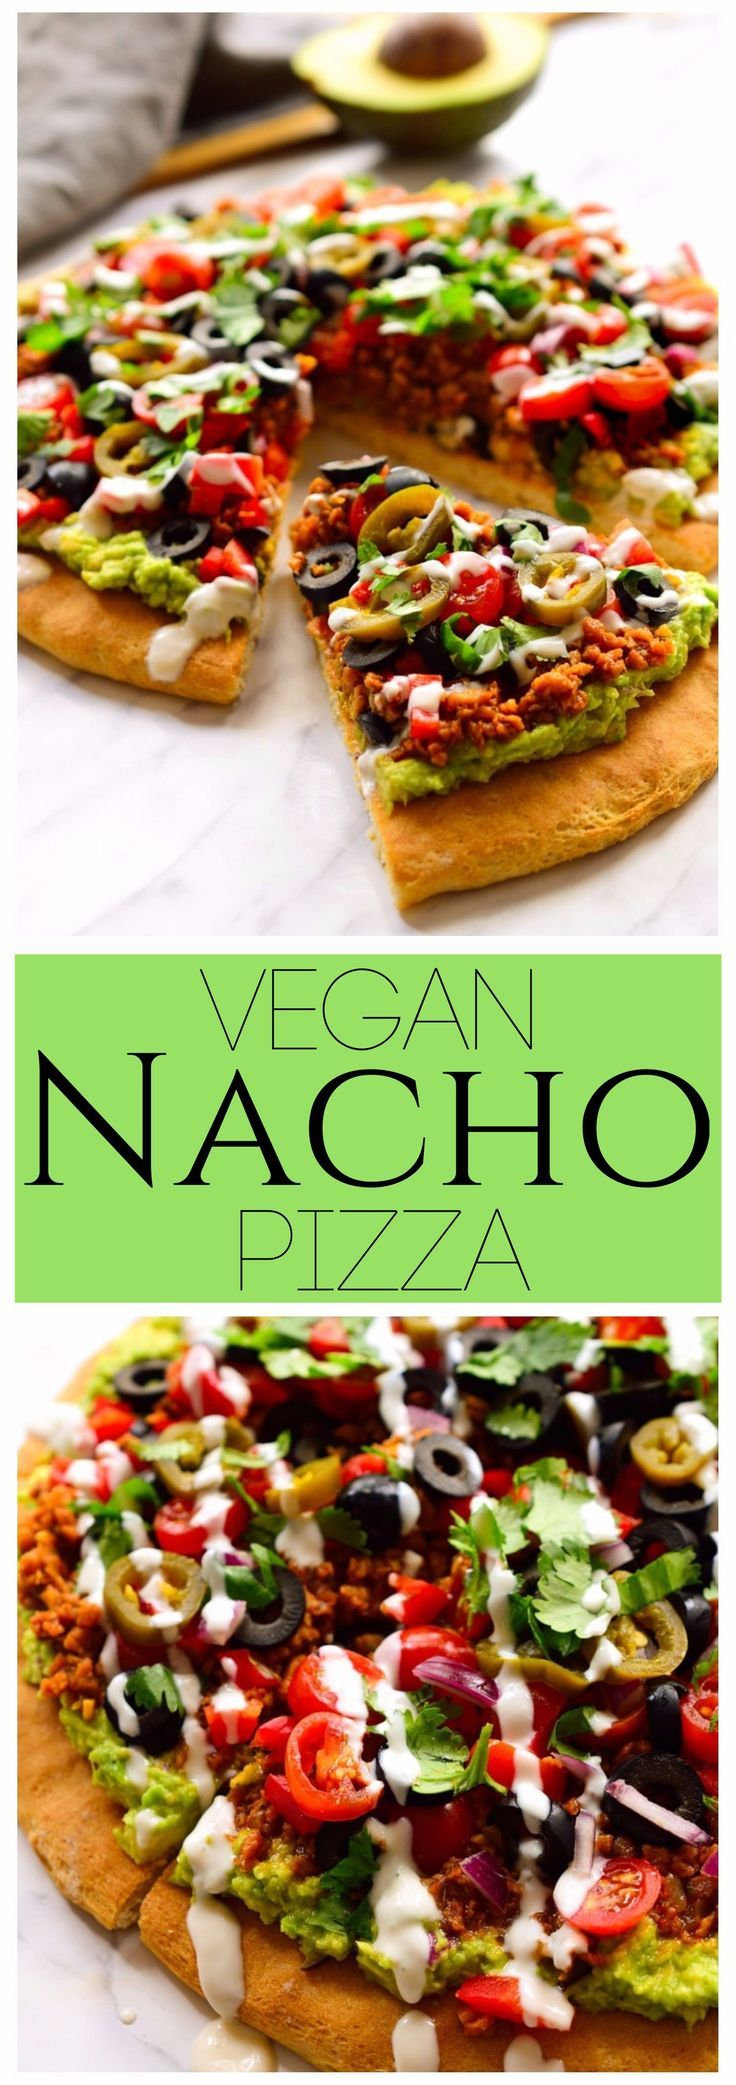 170 best Food: Pizza images on Pinterest | Pizza recipes, Relish ...